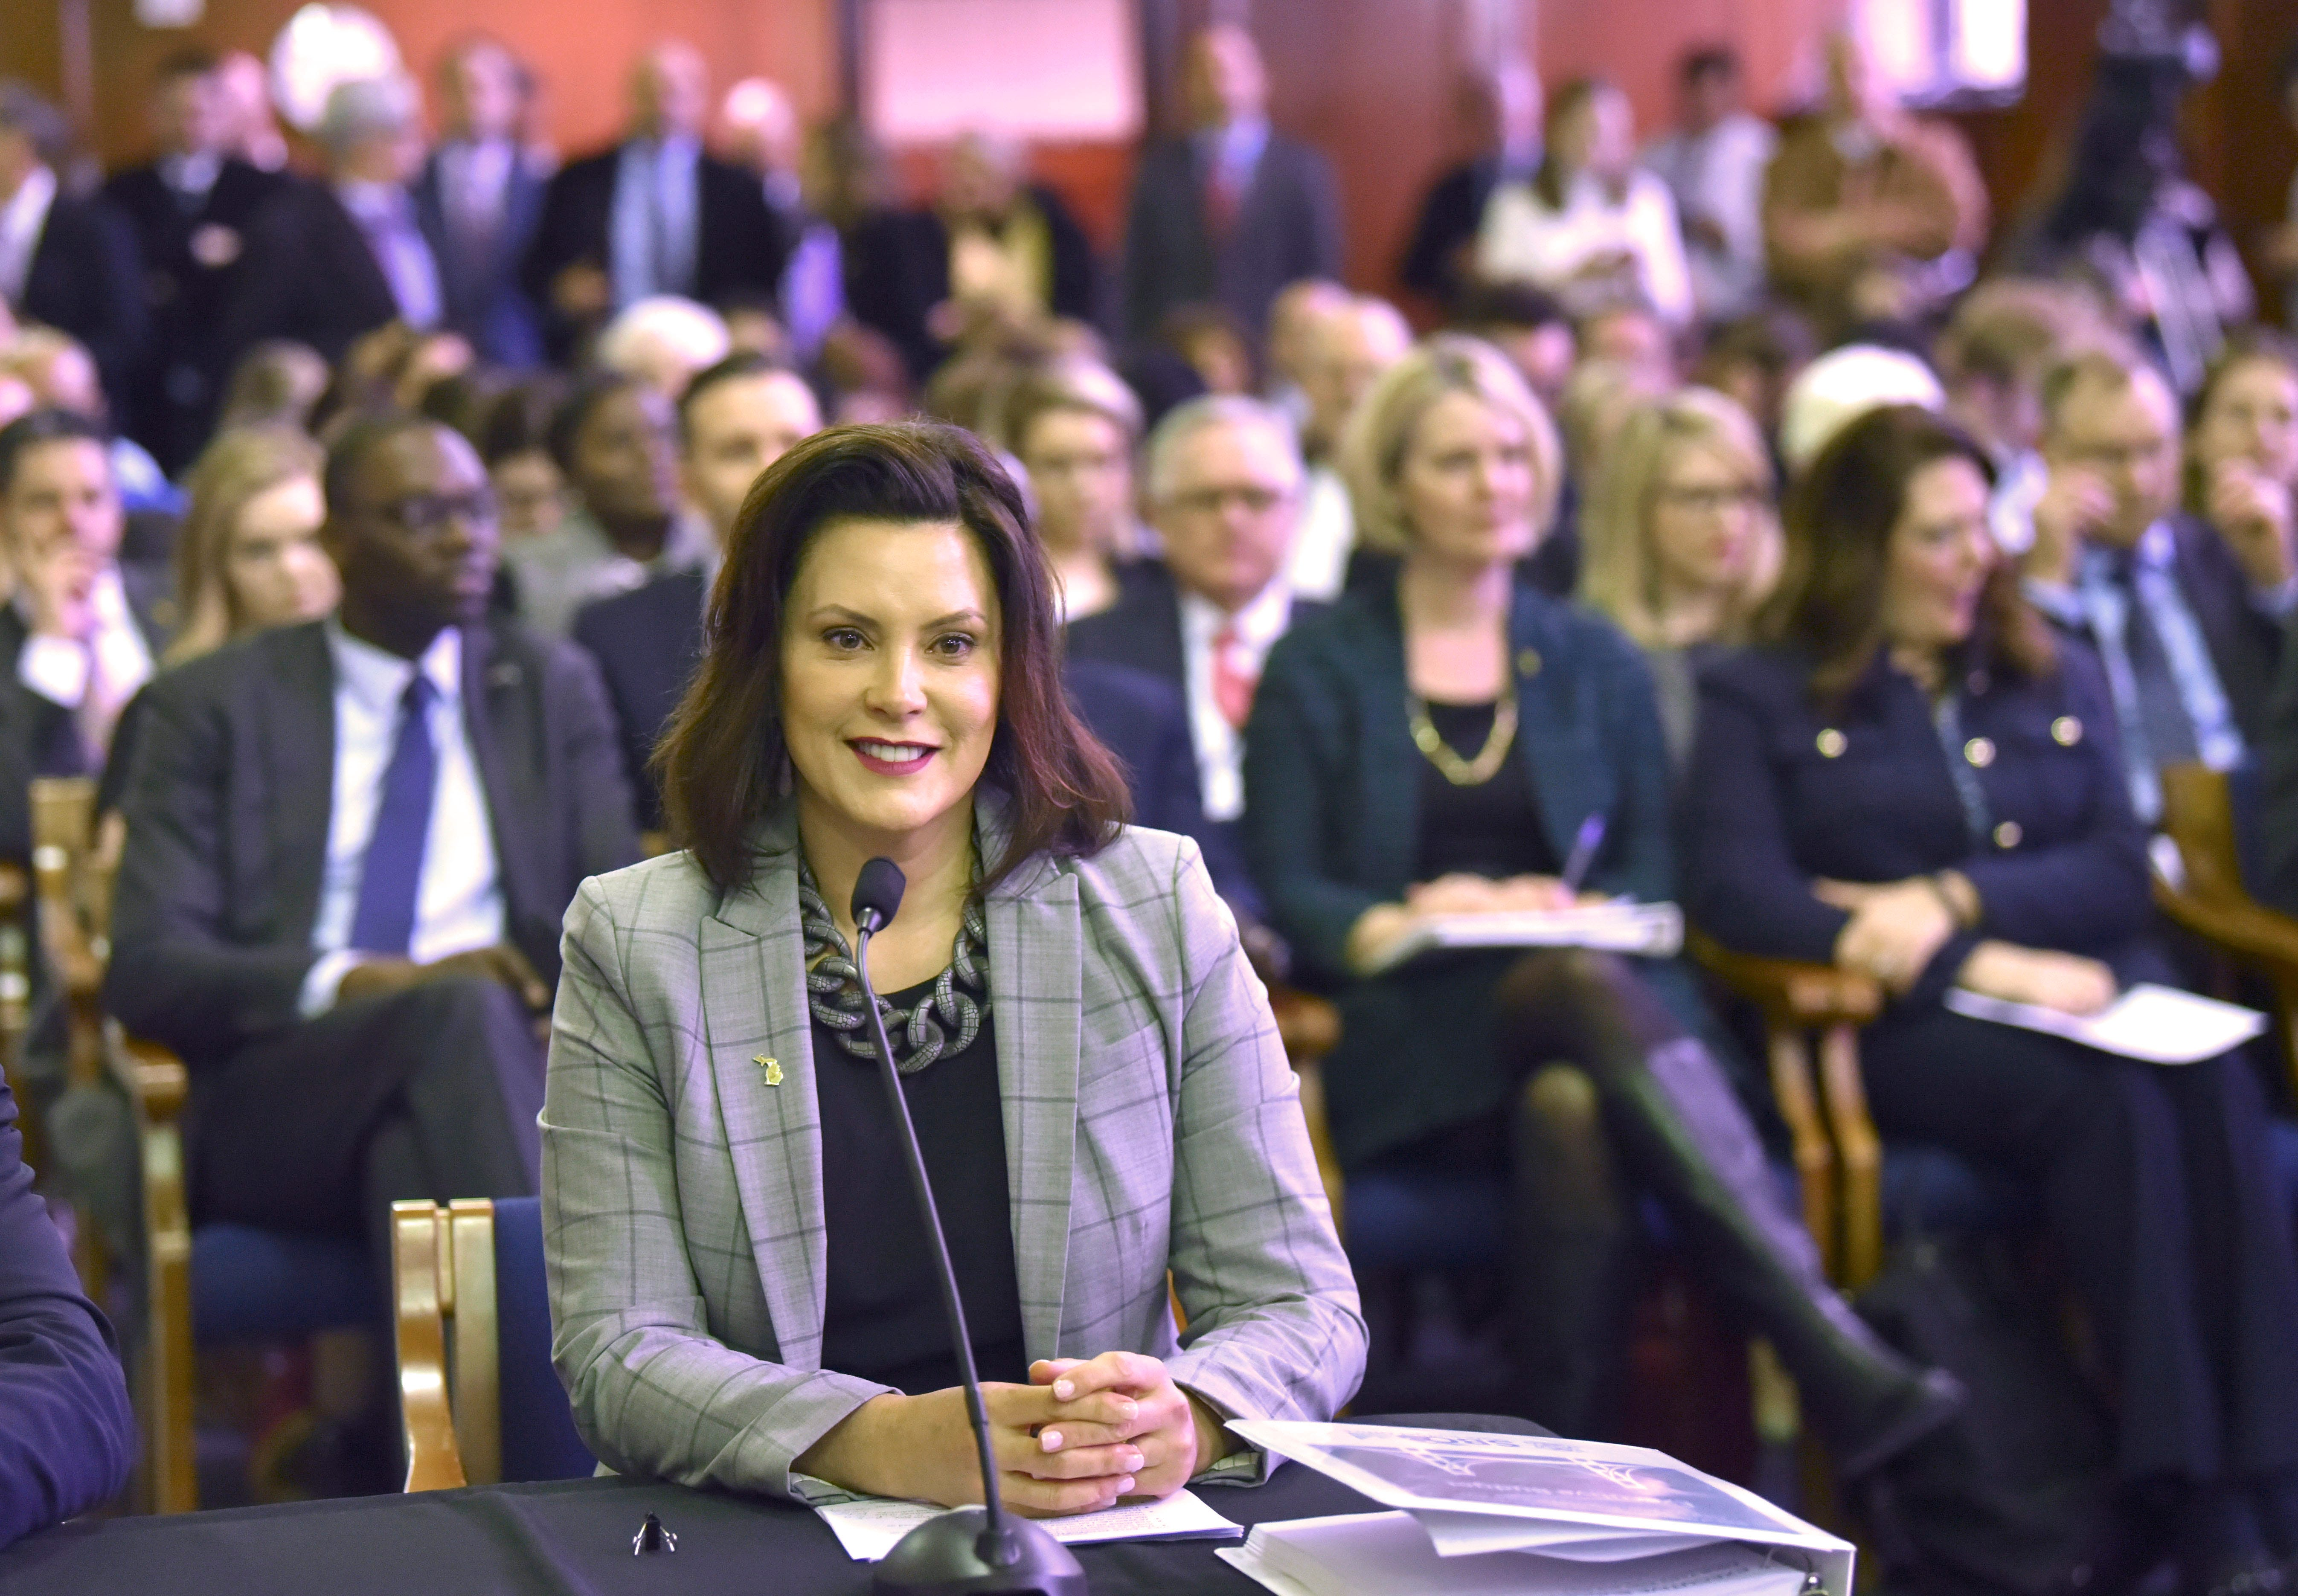 Whitmer S Approval Rating Dips But Still Positive